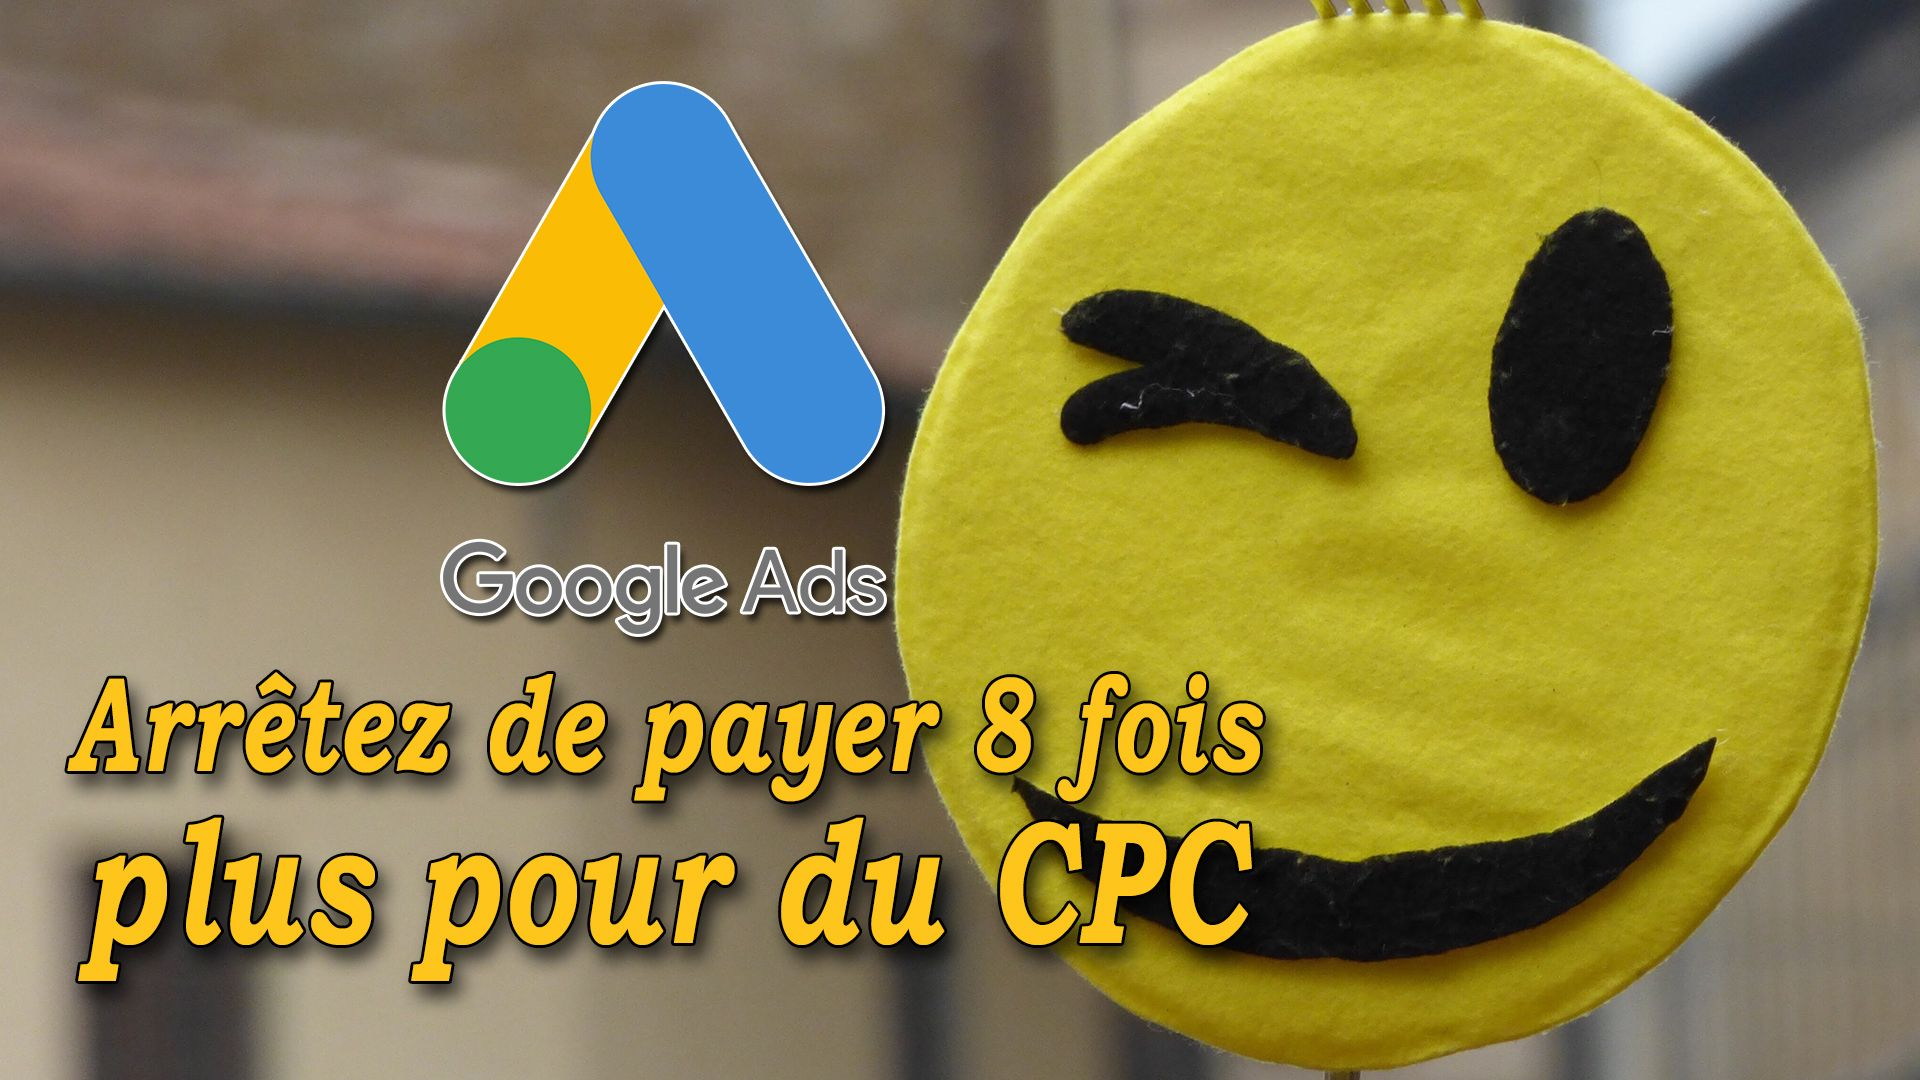 Adwords : Arrêtez de payer 8 fois plus pour du CPC #GrowthHacking #WebMarketing #FormationGrowthHacking #CentreDeFormationFrance #TunnelAARRR #AARRR #SocialMedia #CommunityManagement #SEO #adwords #googleads